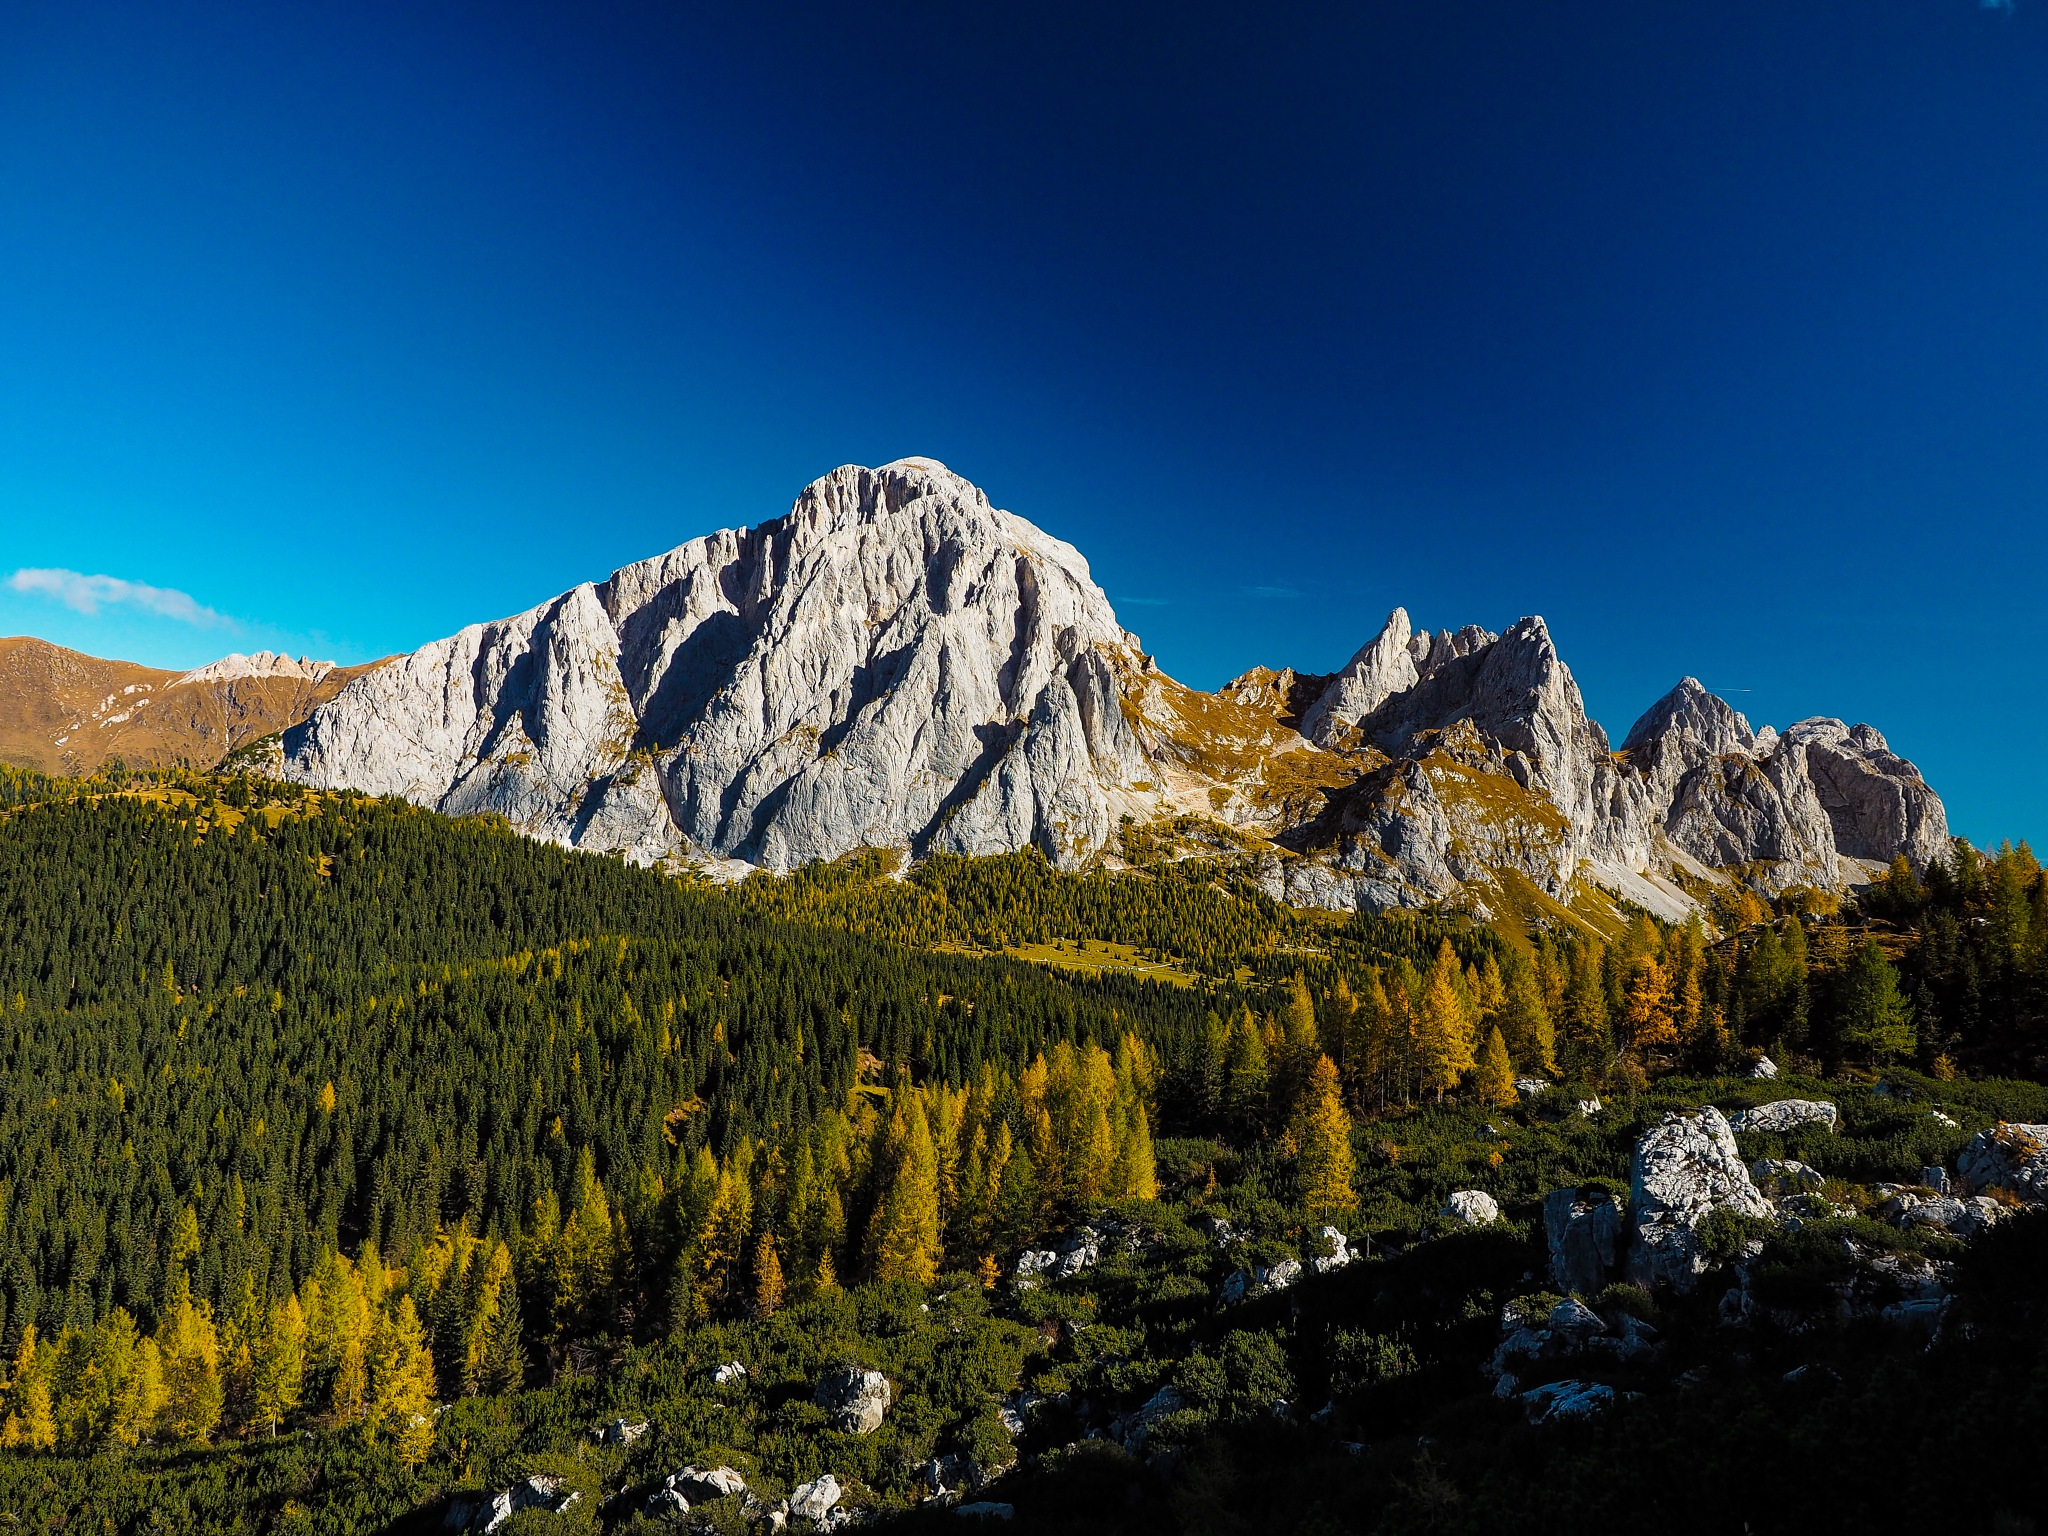 Autumn is coming by Giancarlo Cappellari